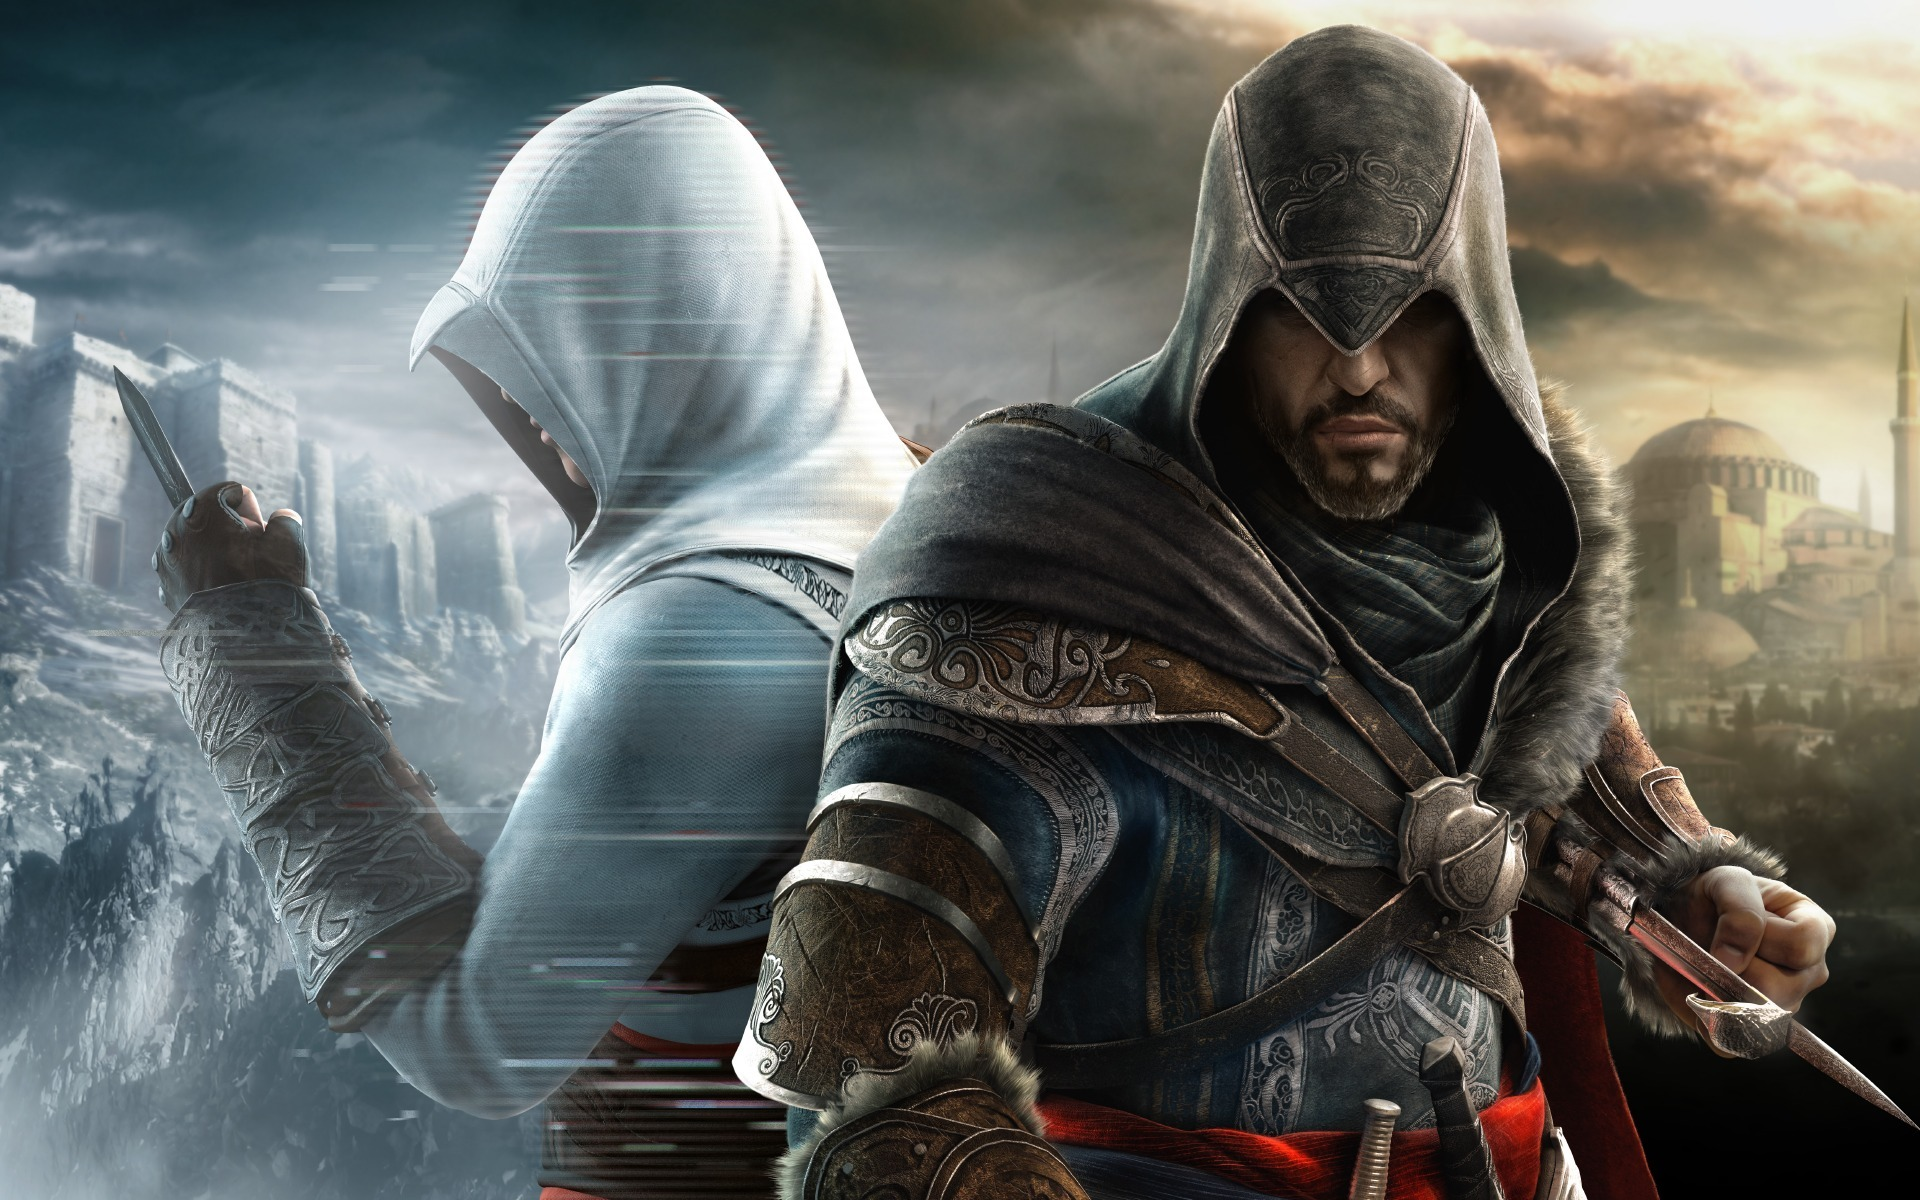 18602 download wallpaper Games, Assassin's Creed screensavers and pictures for free